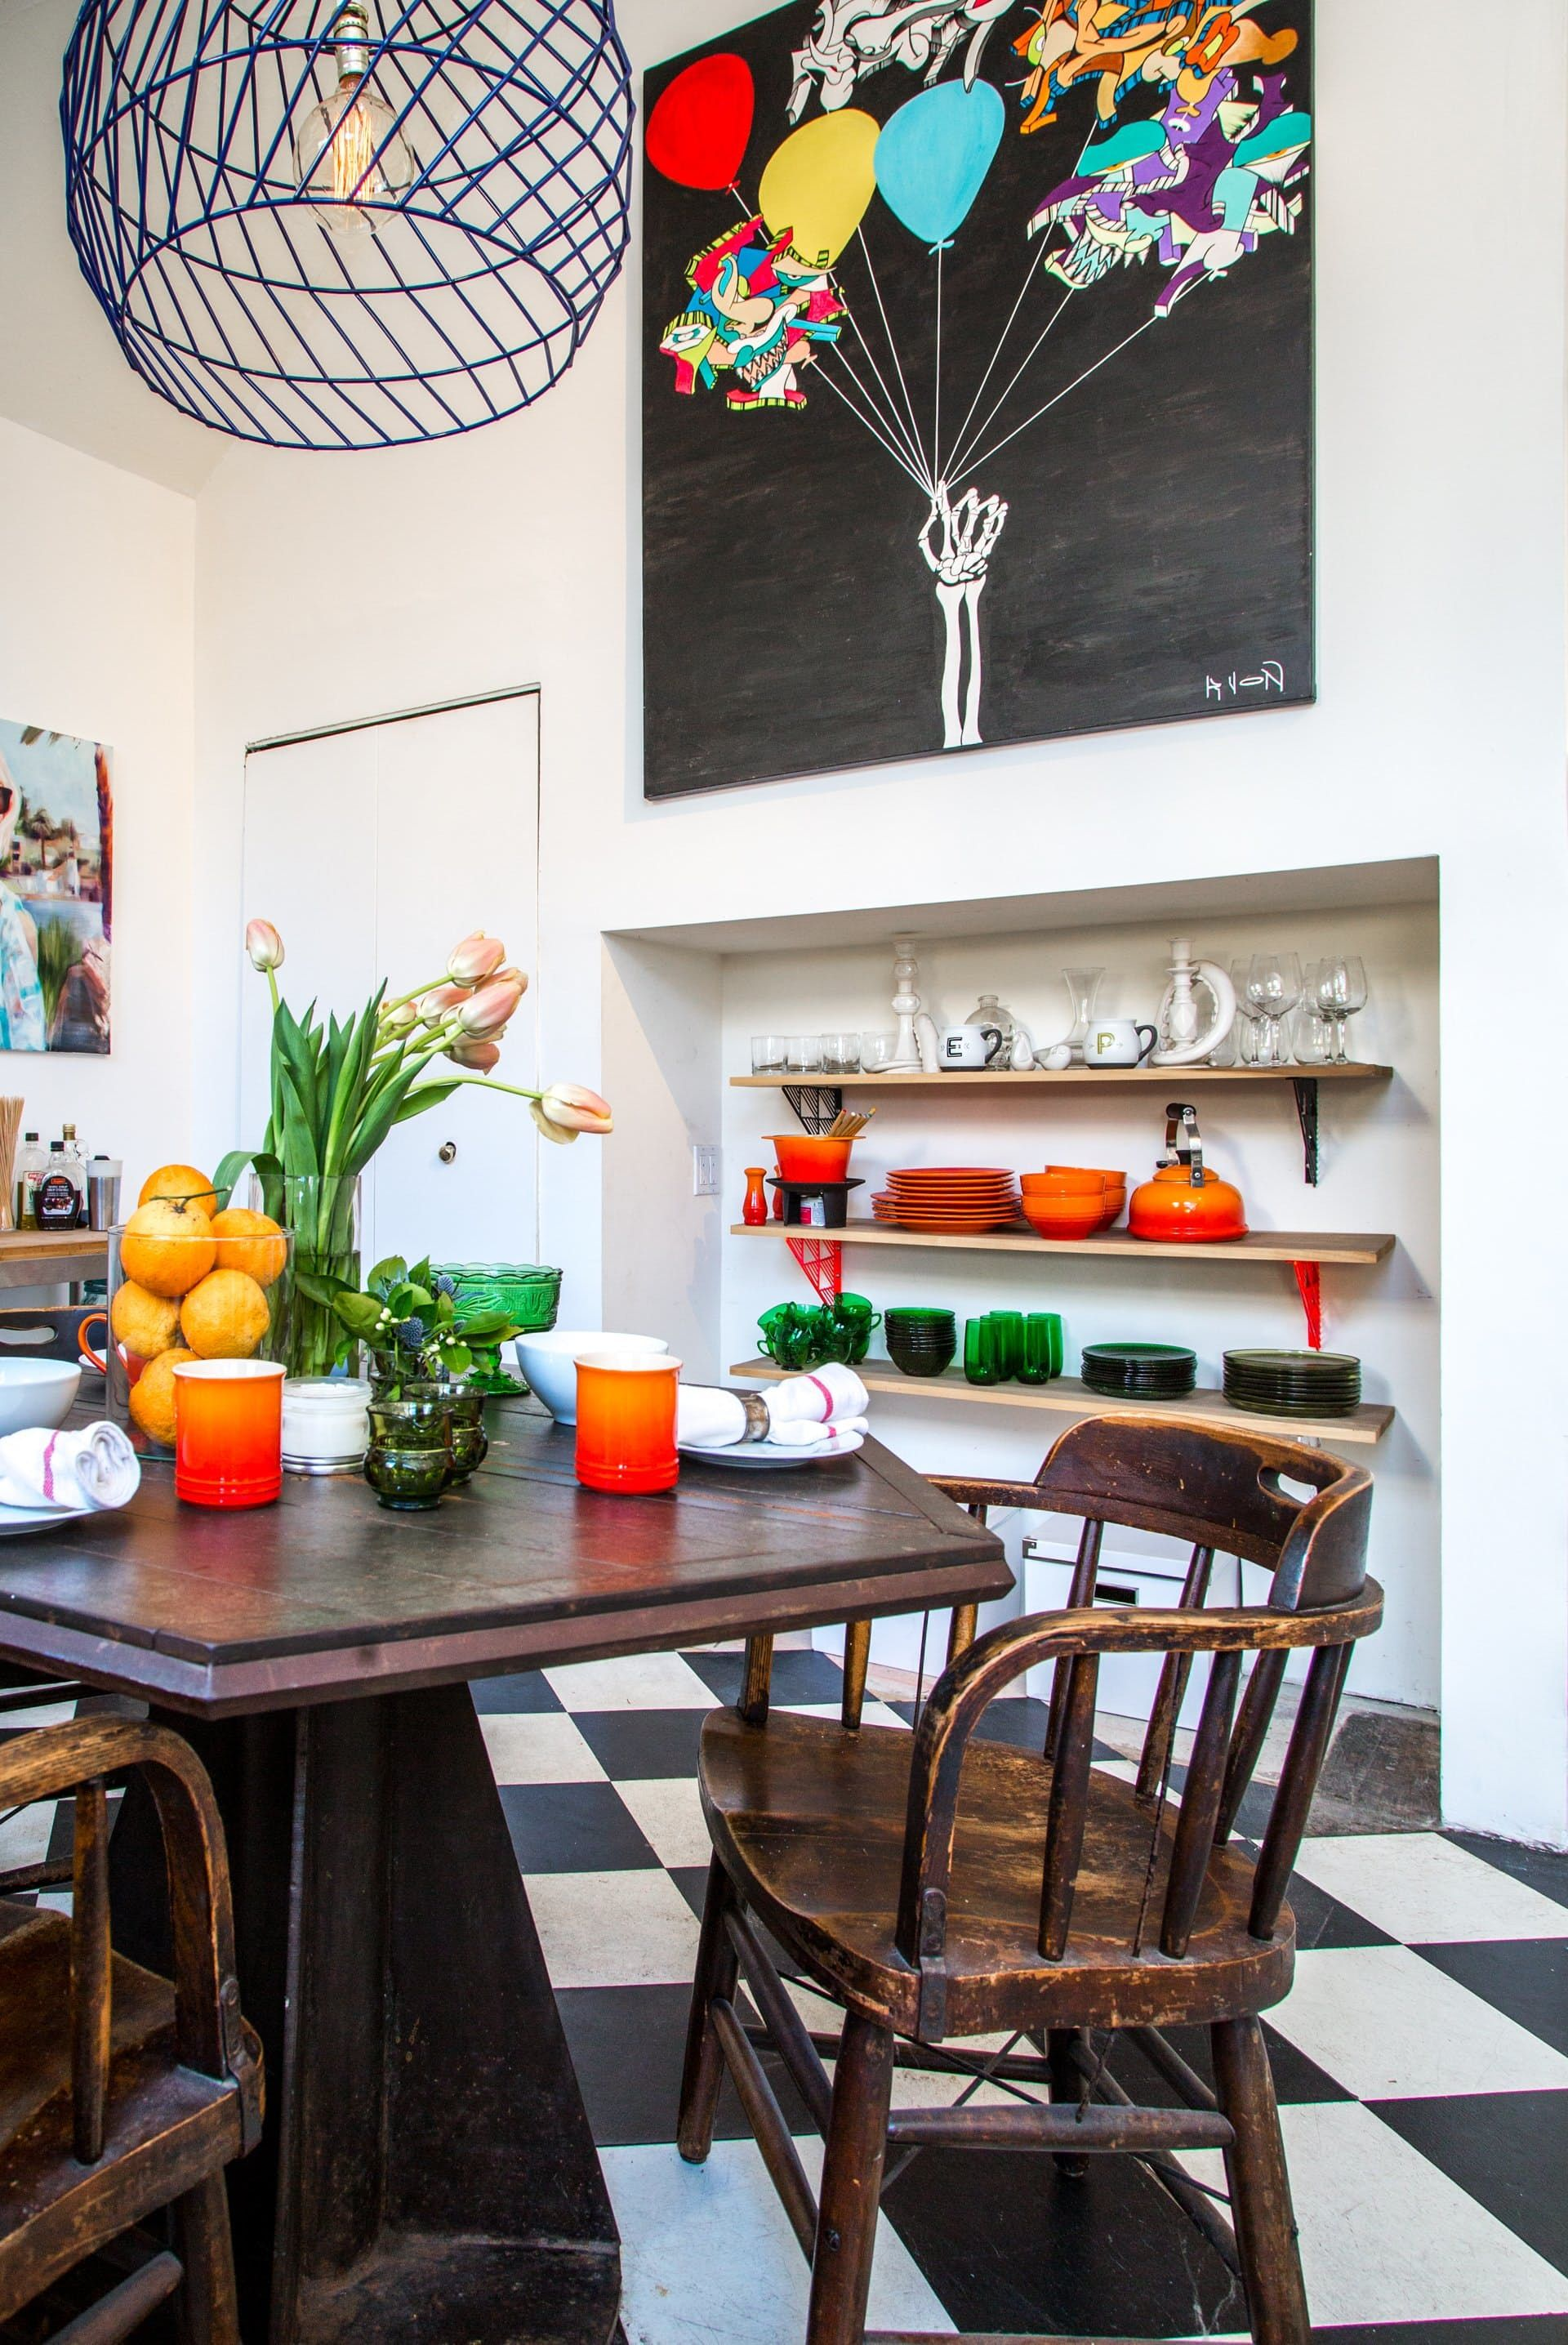 Real Life Results: Super Stylish (& Tidy!) Shelving in Real Kitchens — Rooms That Get It Right